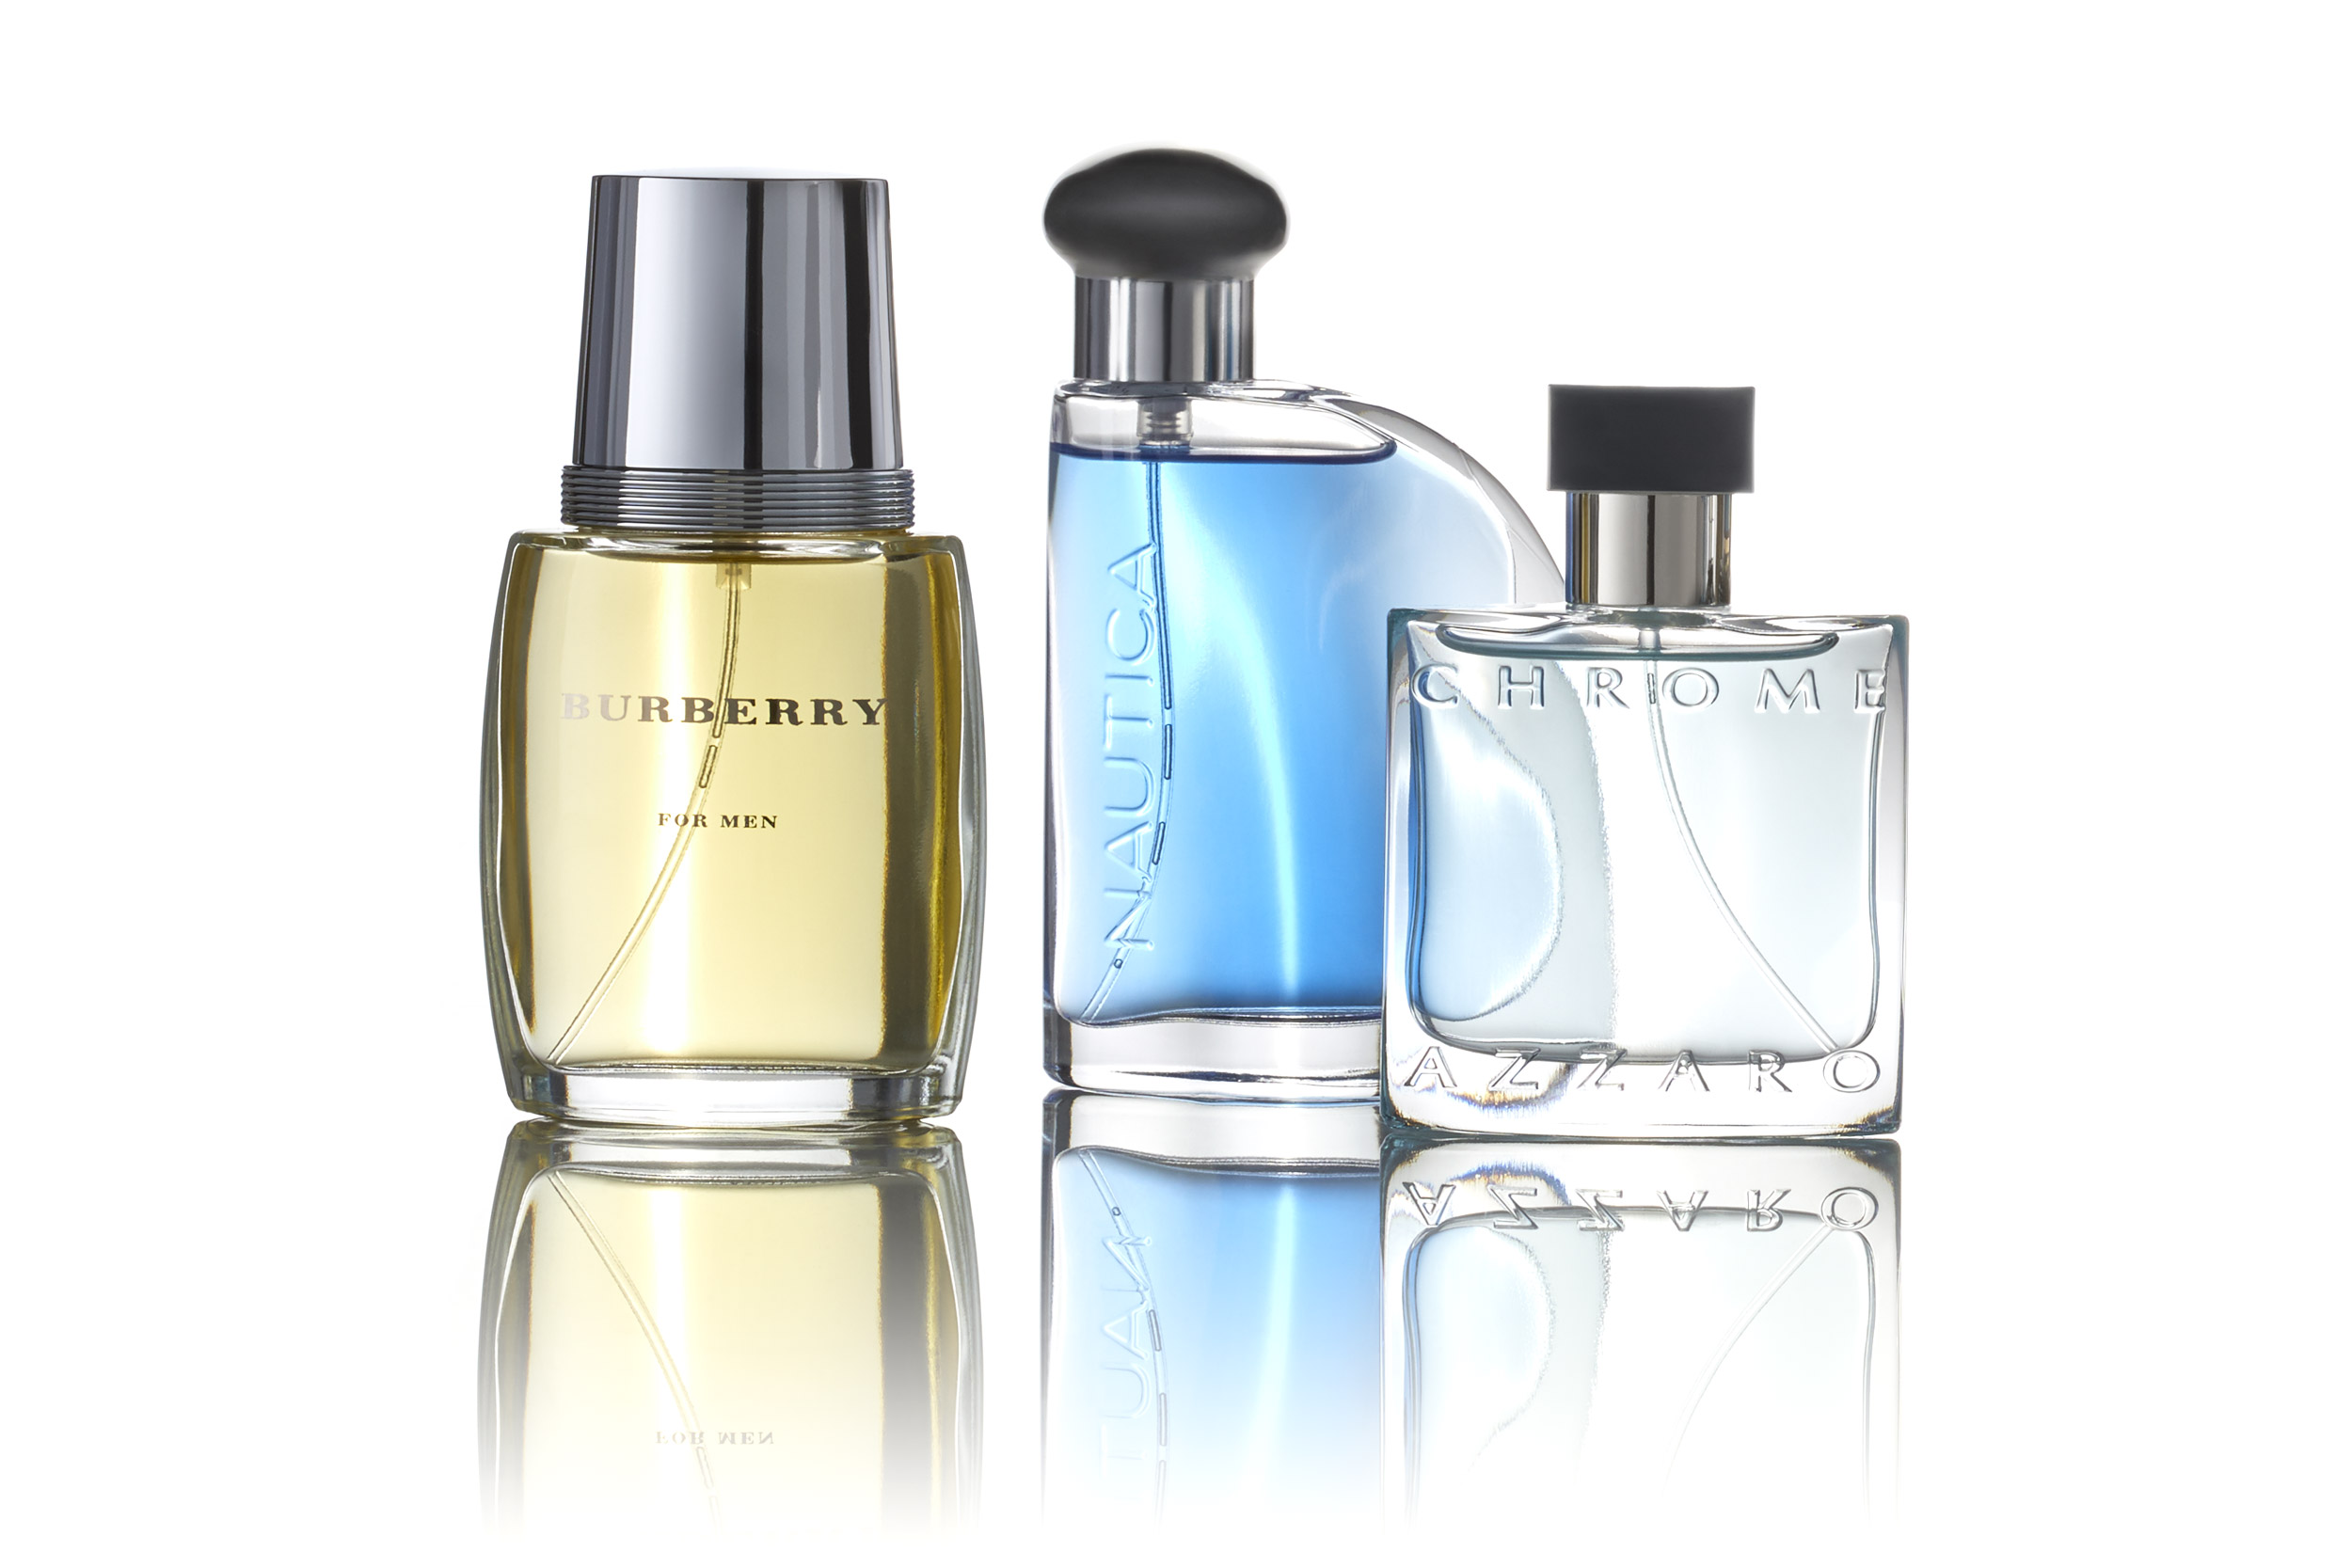 41225_215809_MENSFRAGRANCES_GS_052518_COMP_crop